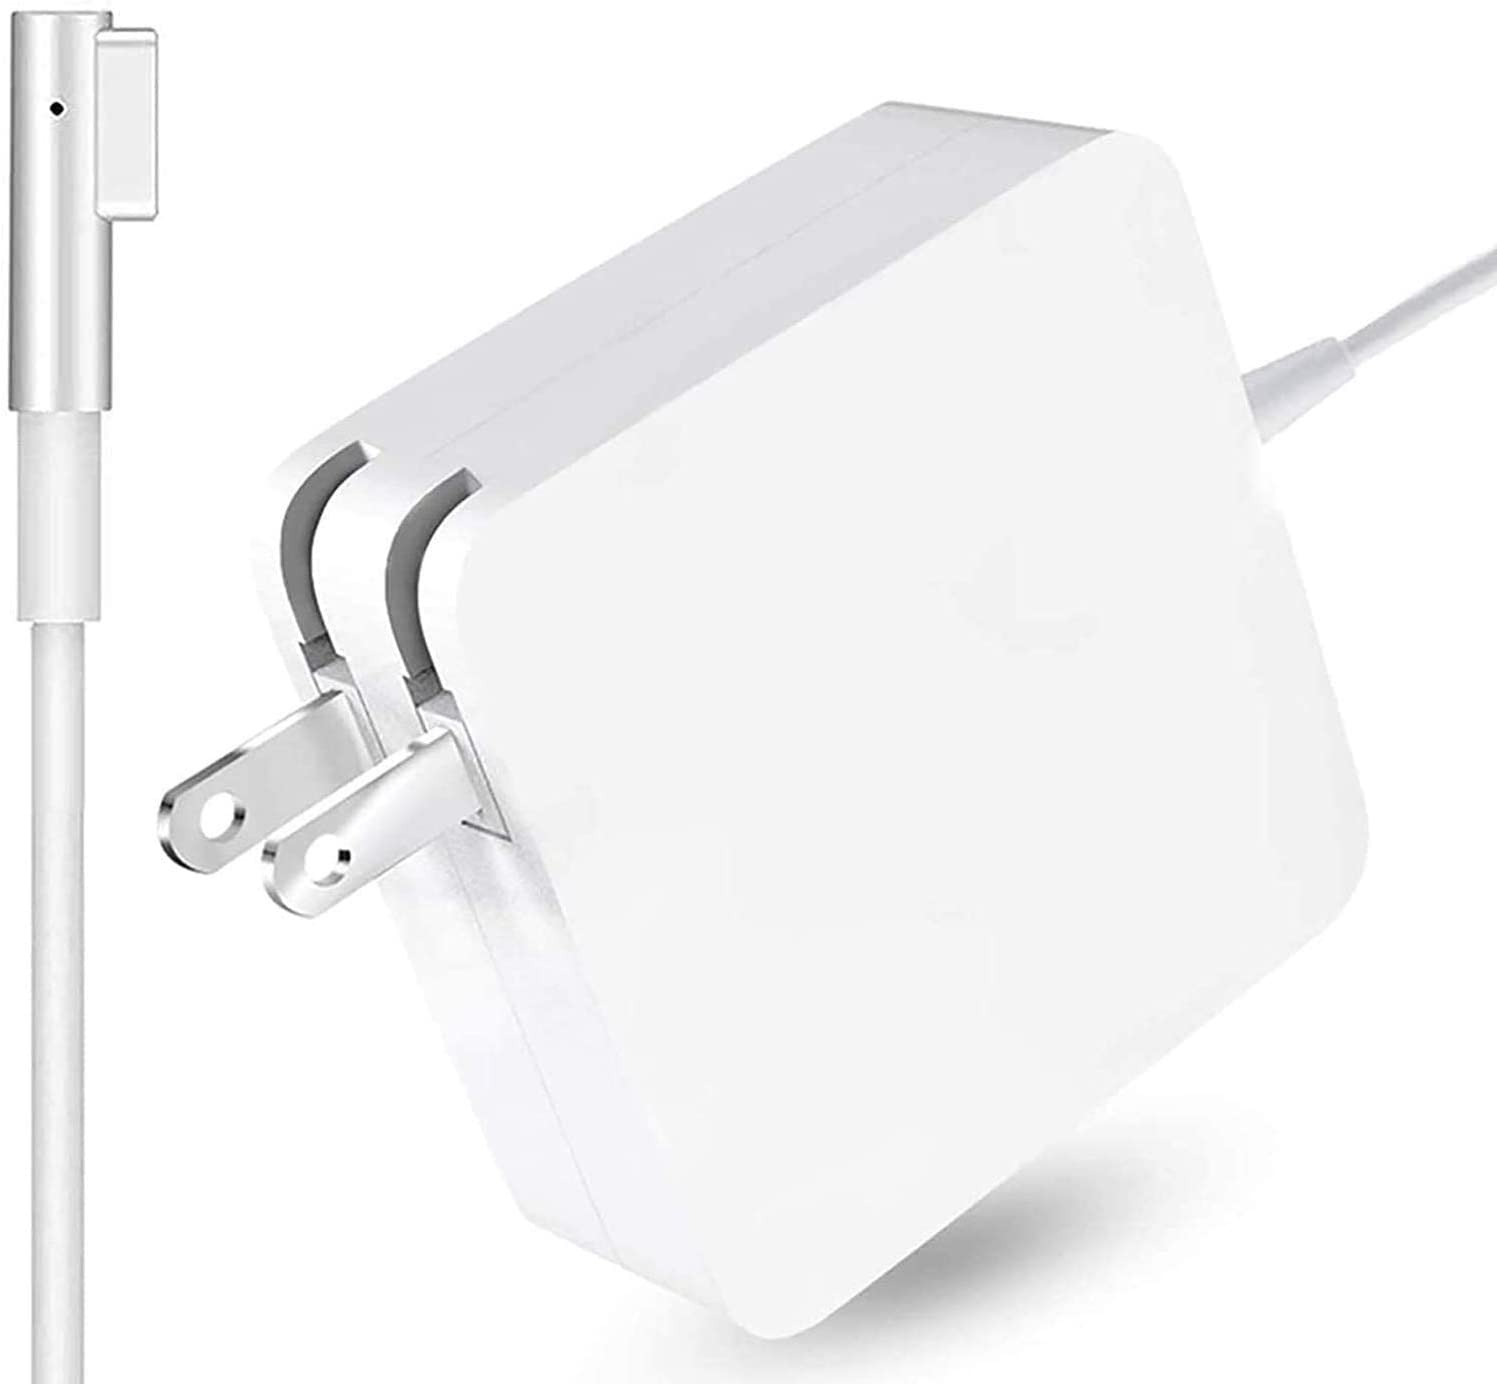 Replacement Mac Book Air Charger, AC 45W L-Tip Power Adapter Charger Compatible with Mac Book Air 11/13 inch (Before Mid 2012)